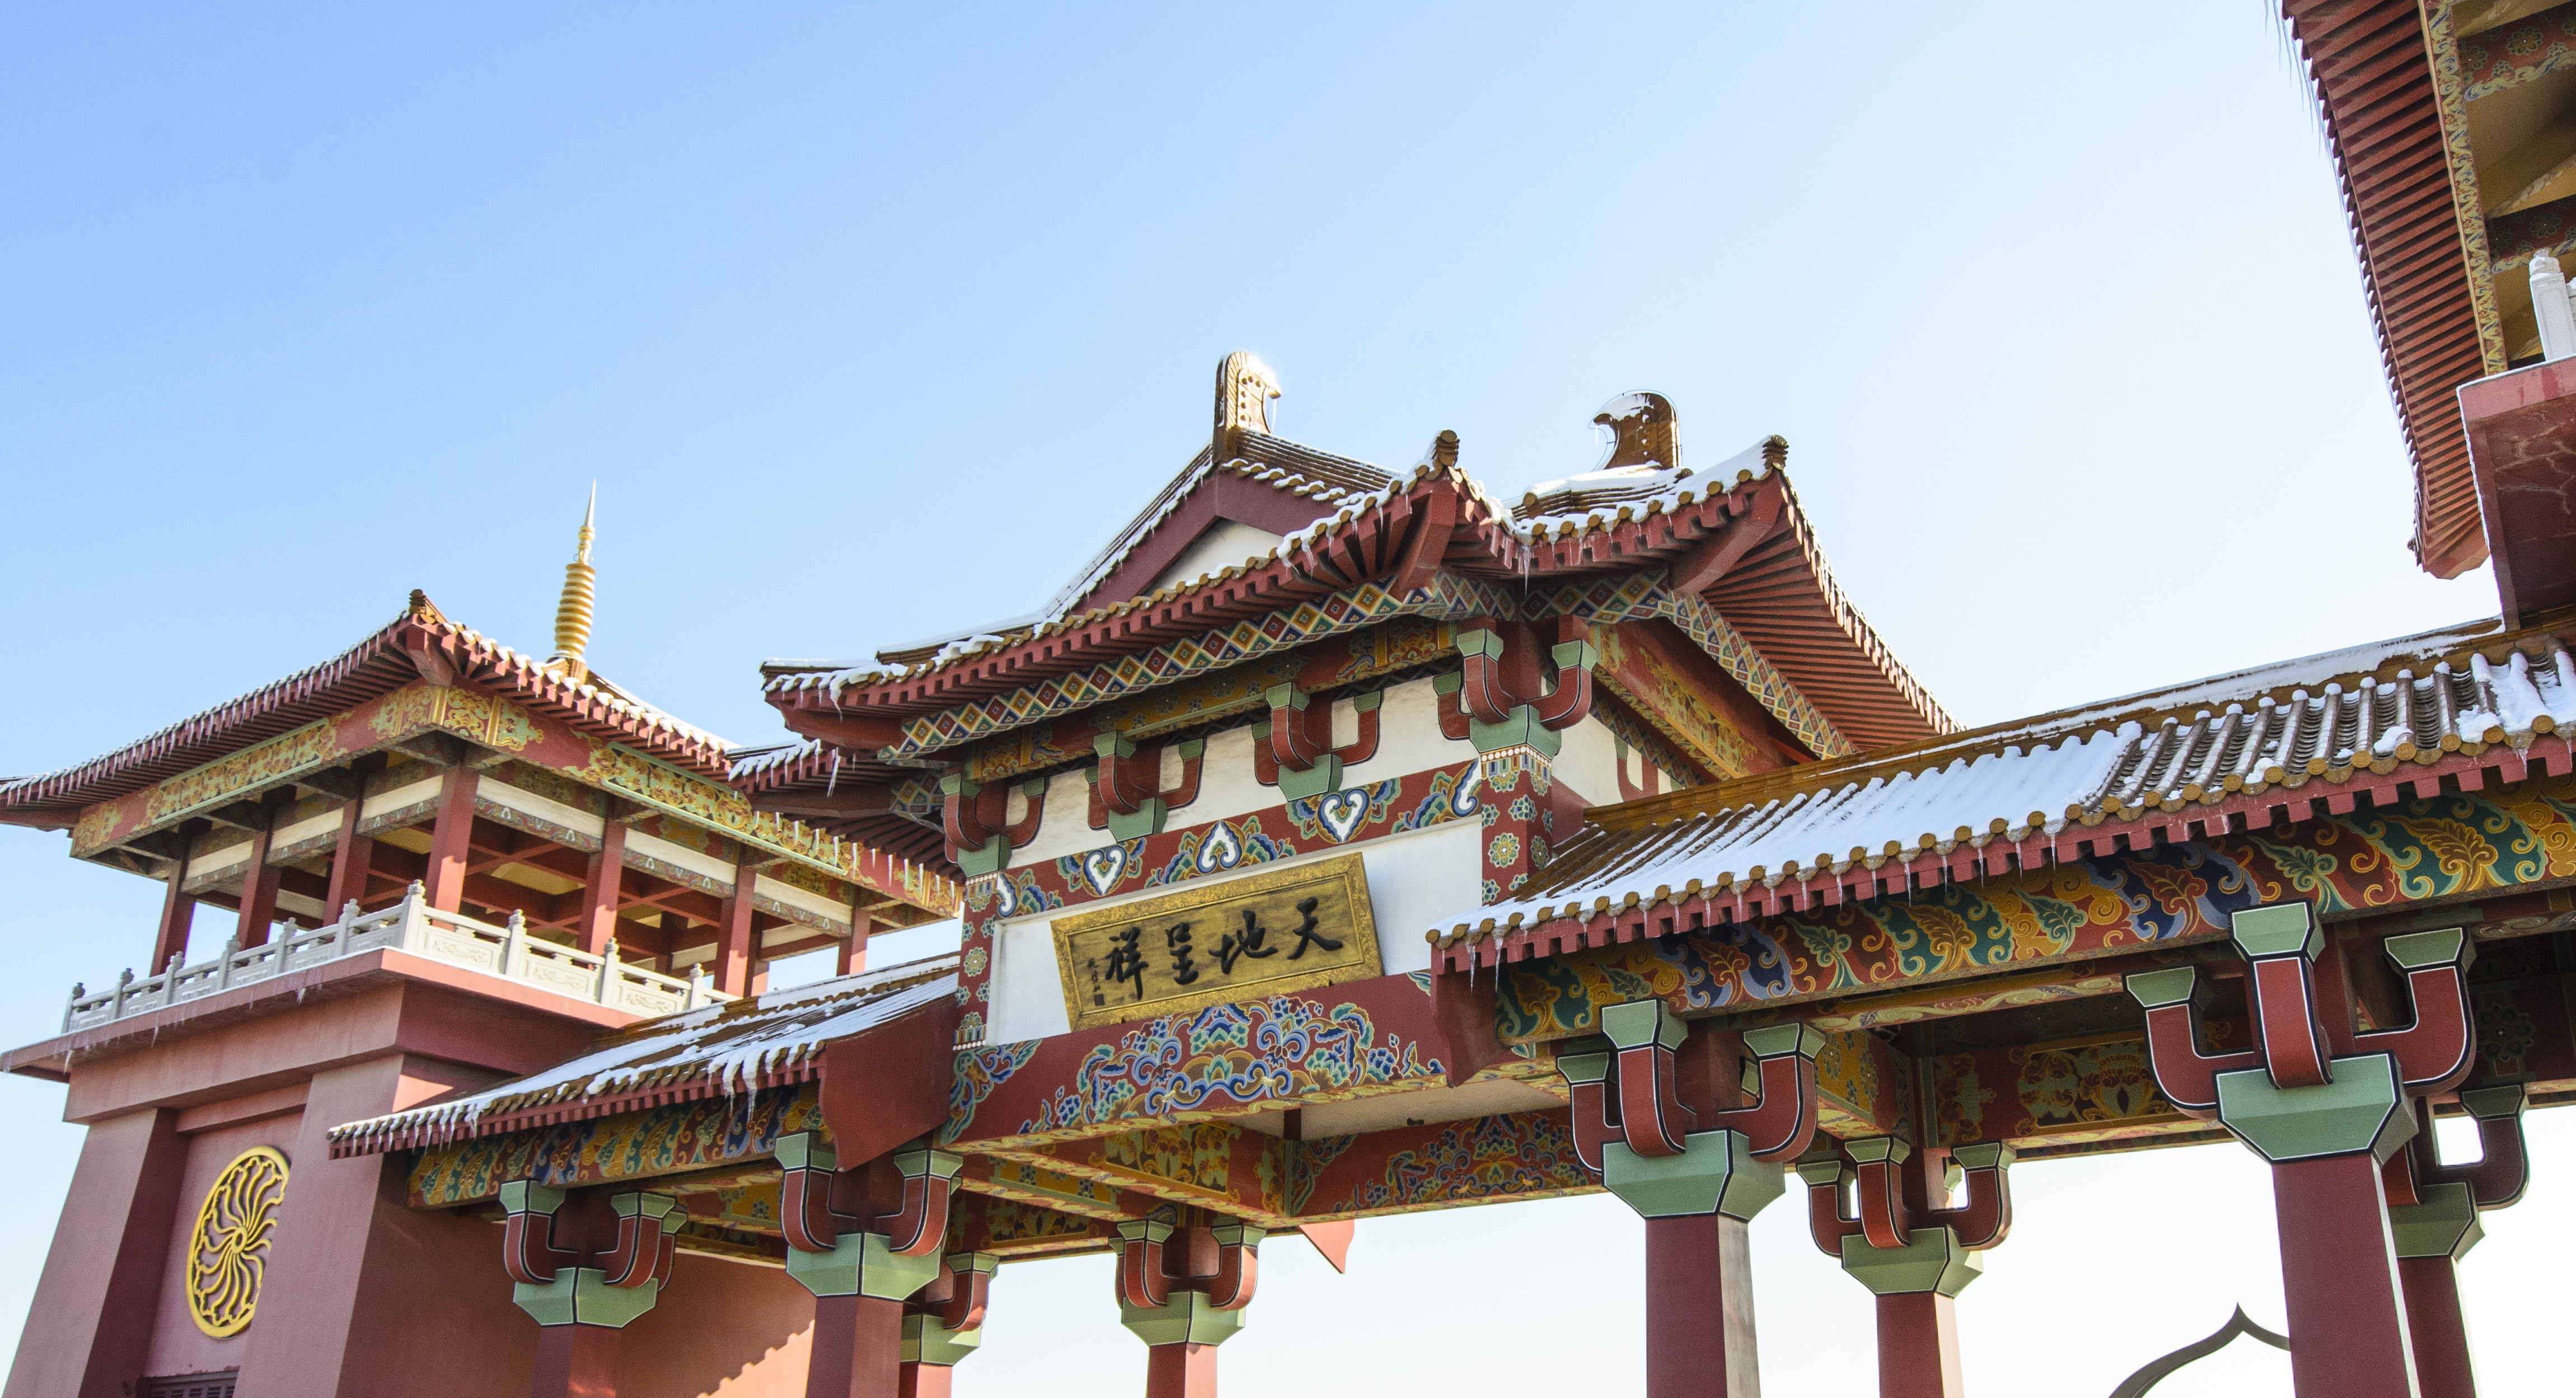 low angle photography of temple gate with Kanji text